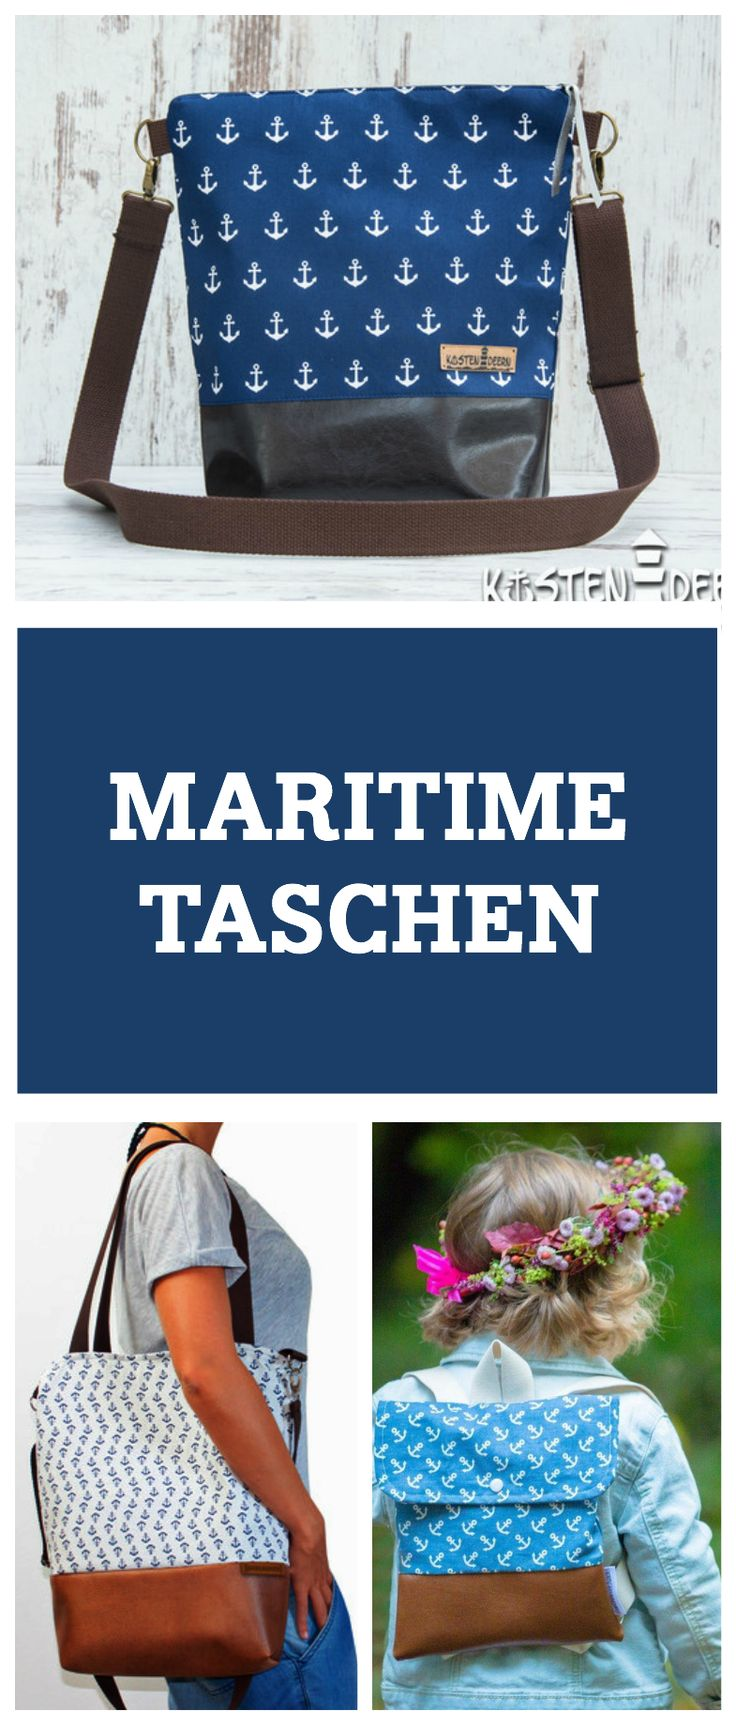 Die schönsten maritimen Taschen mit Anker, Möwe oder Steuerrad / perfect for your nautical outfit: maritime bags with anchor or seagull print via DaWanda.com